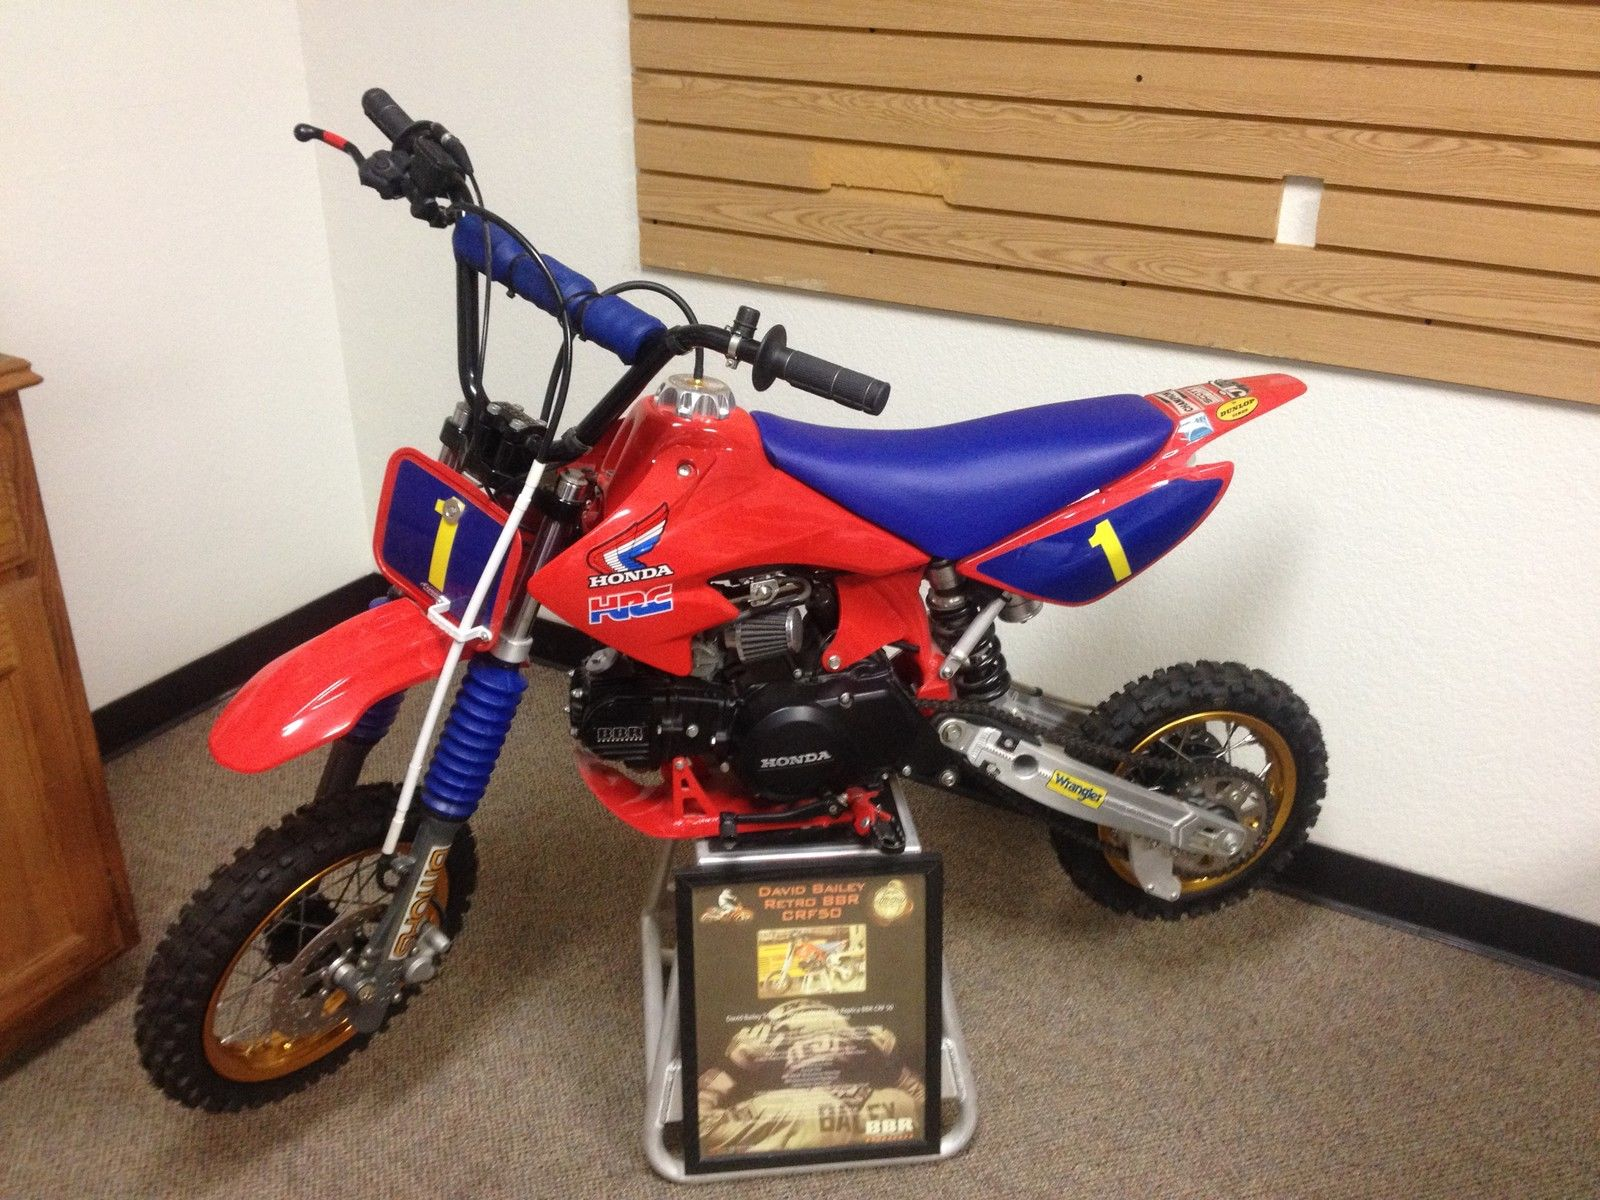 Honda Crf50f David Bailey Tribute Bike Will Not Ship 2006 50cc Pit Crf